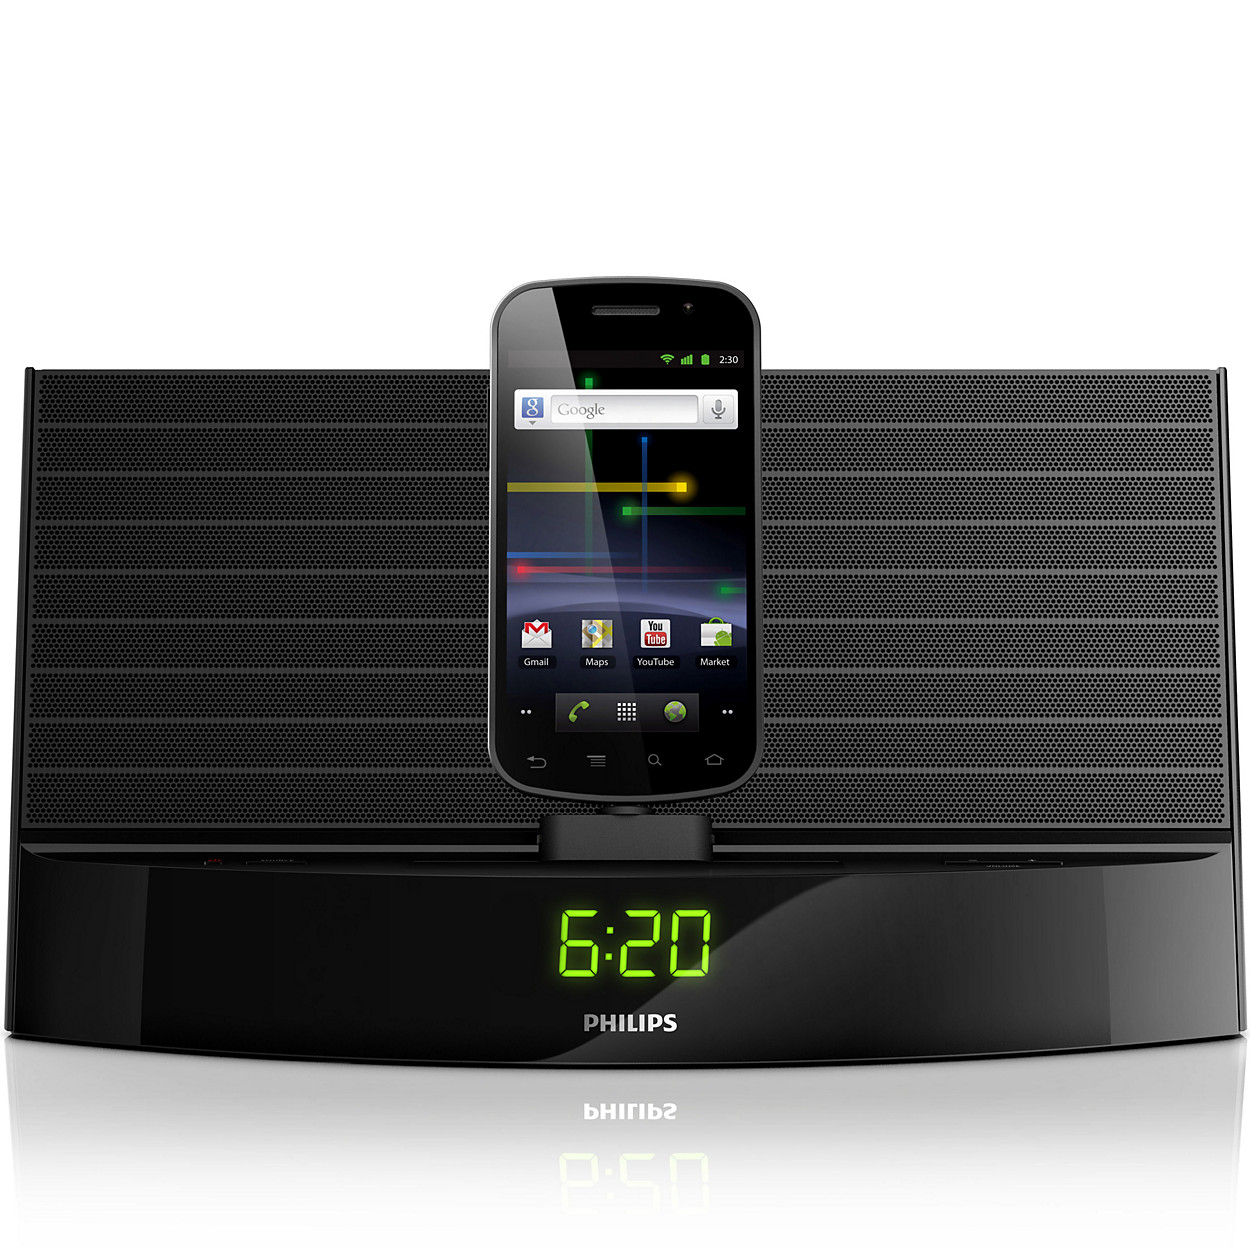 station d 39 accueil avec bluetooth as141 12 philips. Black Bedroom Furniture Sets. Home Design Ideas